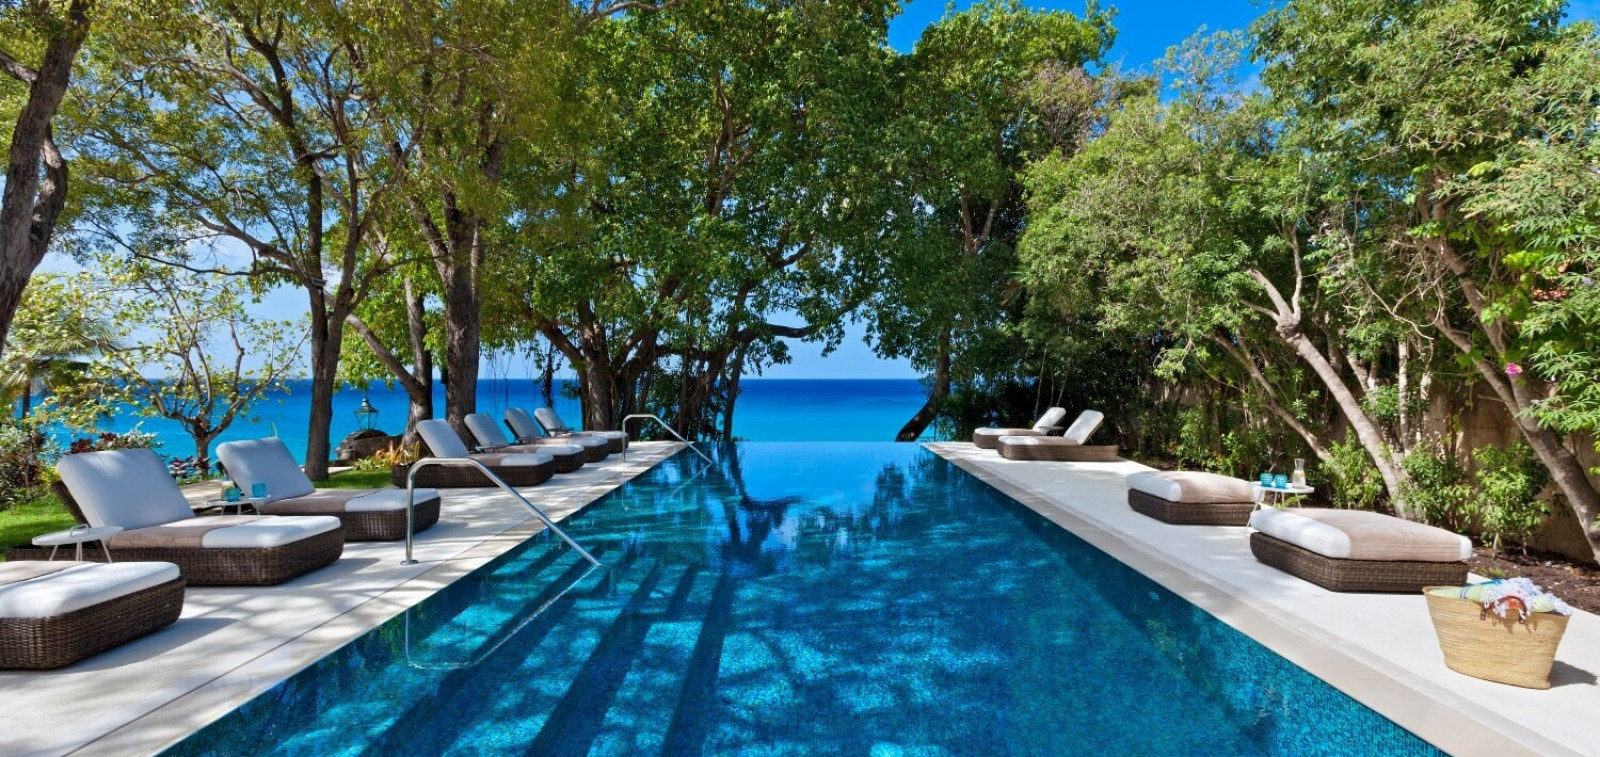 Luxury Villas in Barbados Rental Holiday with Private Pool - Crystal Springs